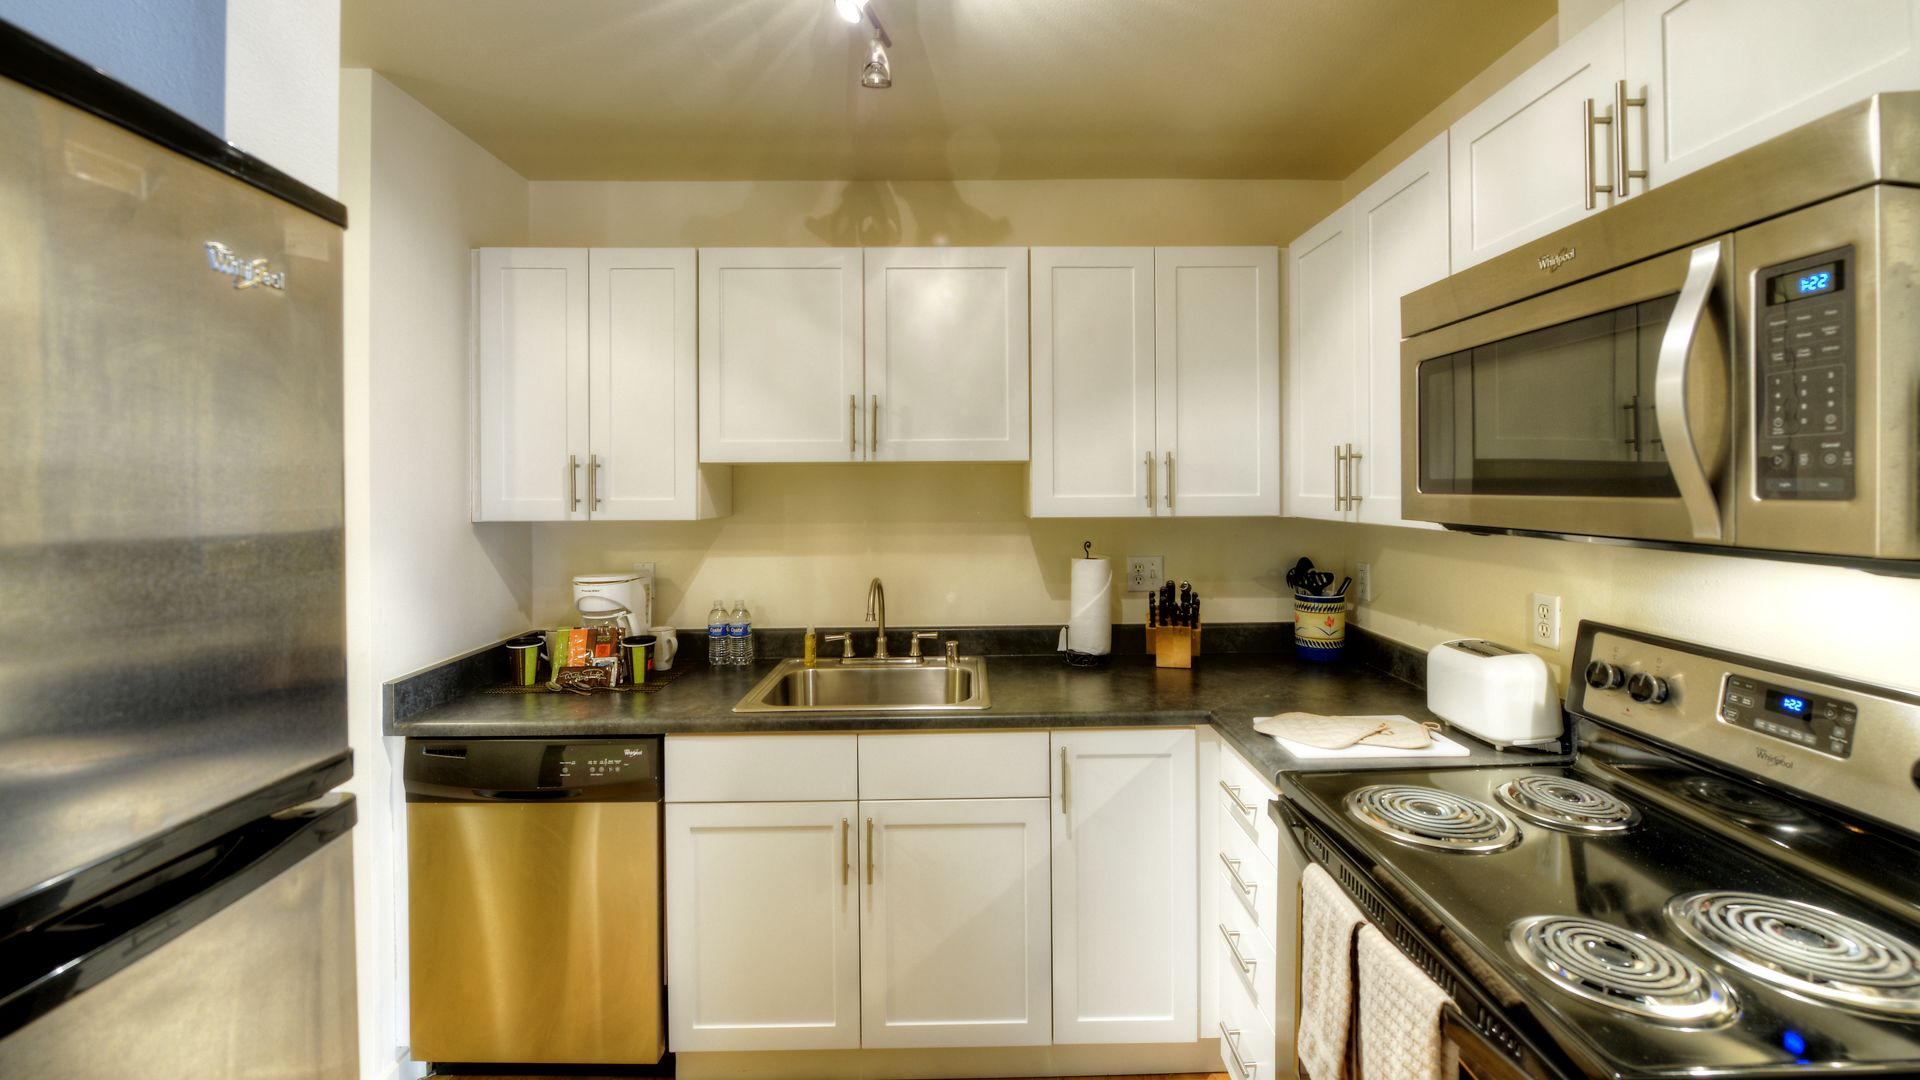 City Square Bellevue Apartments - Kitchen